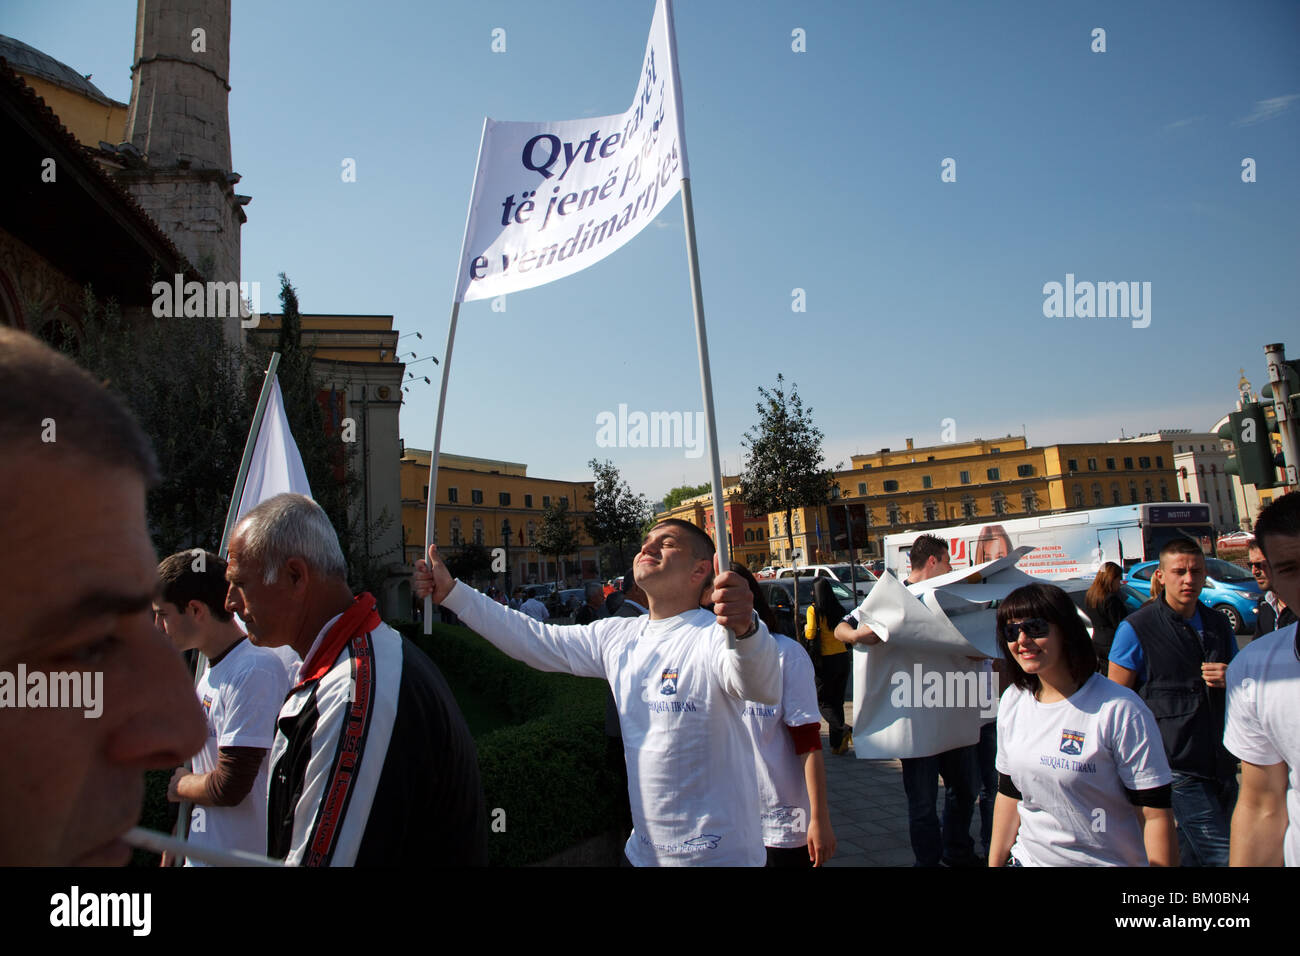 Young people protest in the city centre of Tirana, the capital of Albania. - Stock Image